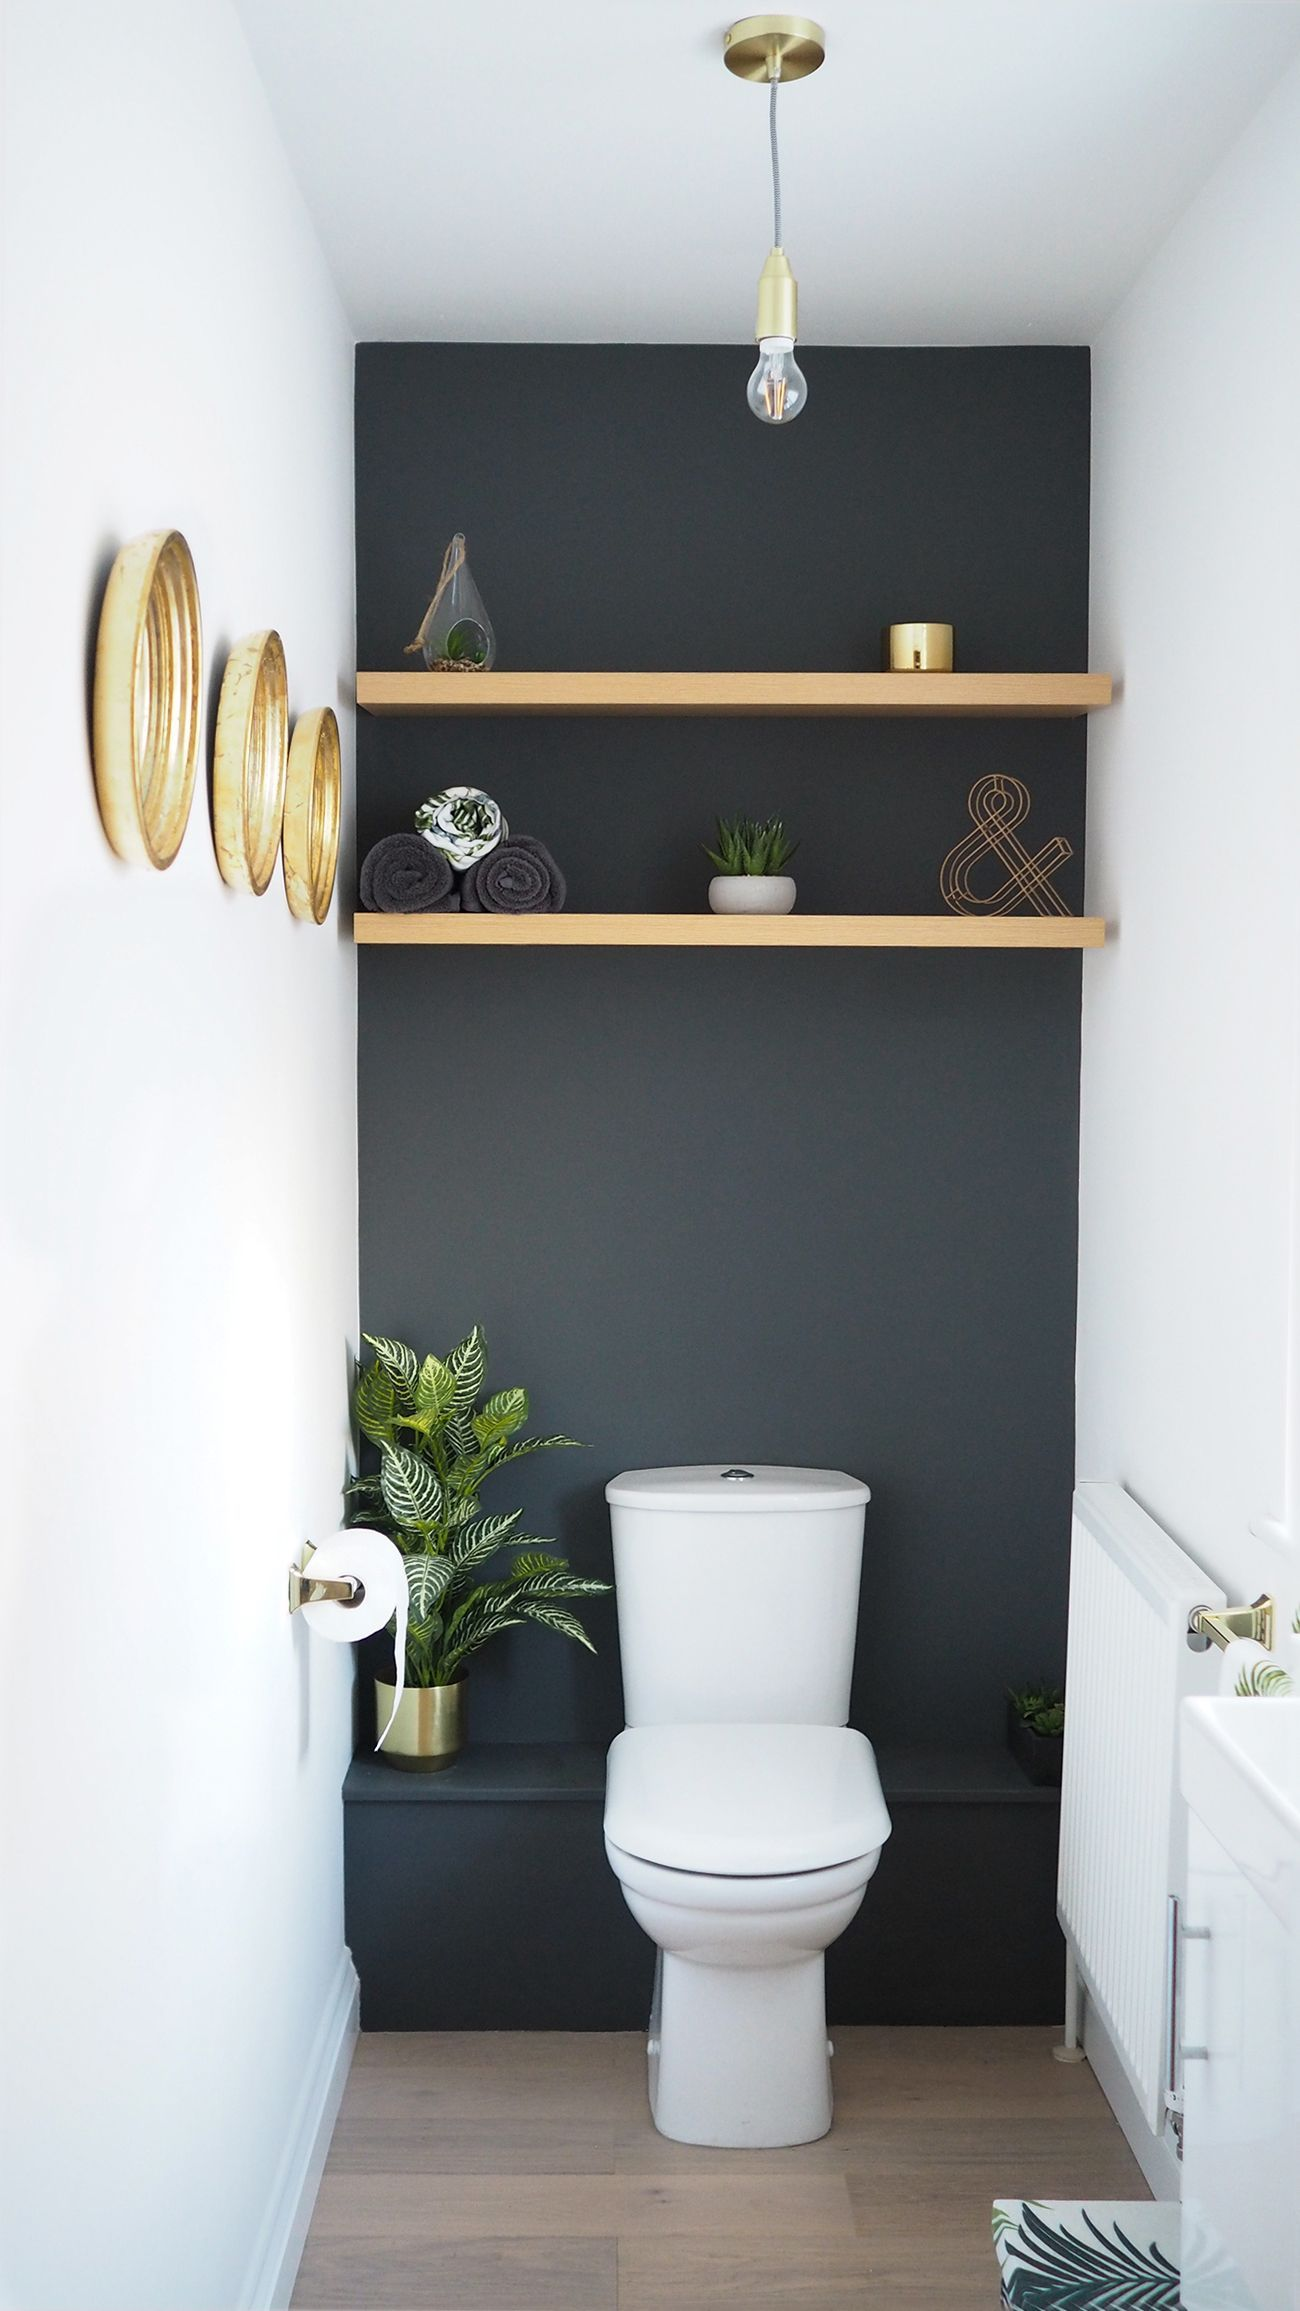 Dark Grey Downstairs Bathroom Diy Home Makeover With Shelves In The Alcoves And Gold Accents Downstairs Toilet Small Space Interior Design Bathroom Inspiration